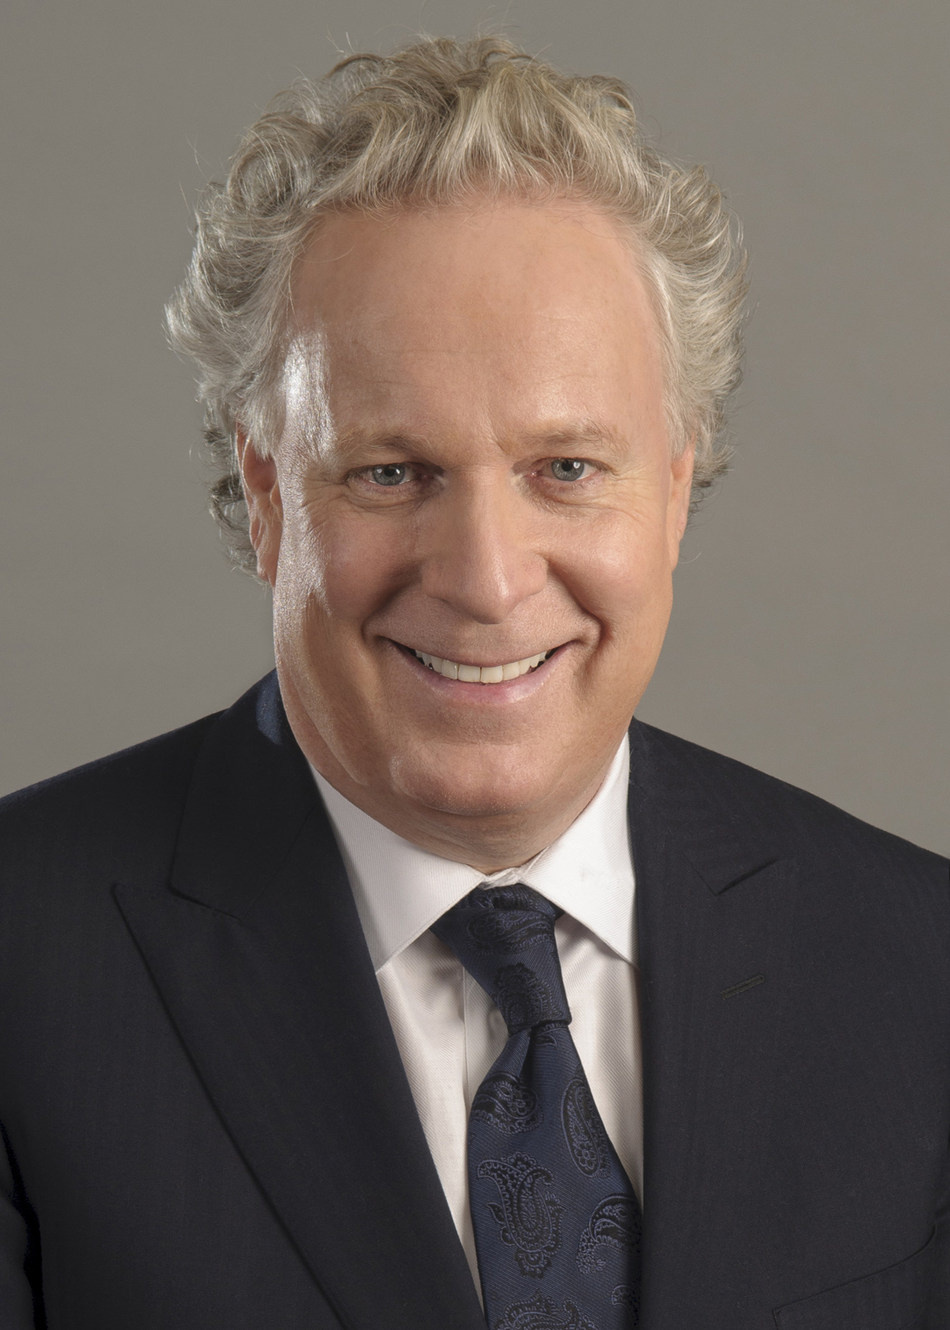 Ondine Biomedical Announces the Appointment of The Honourable Jean Charest, Former Premier of Quebec and Deputy Prime Minister of Canada to Board of Directors (PRNewsfoto/Ondine Biomedical Inc.)